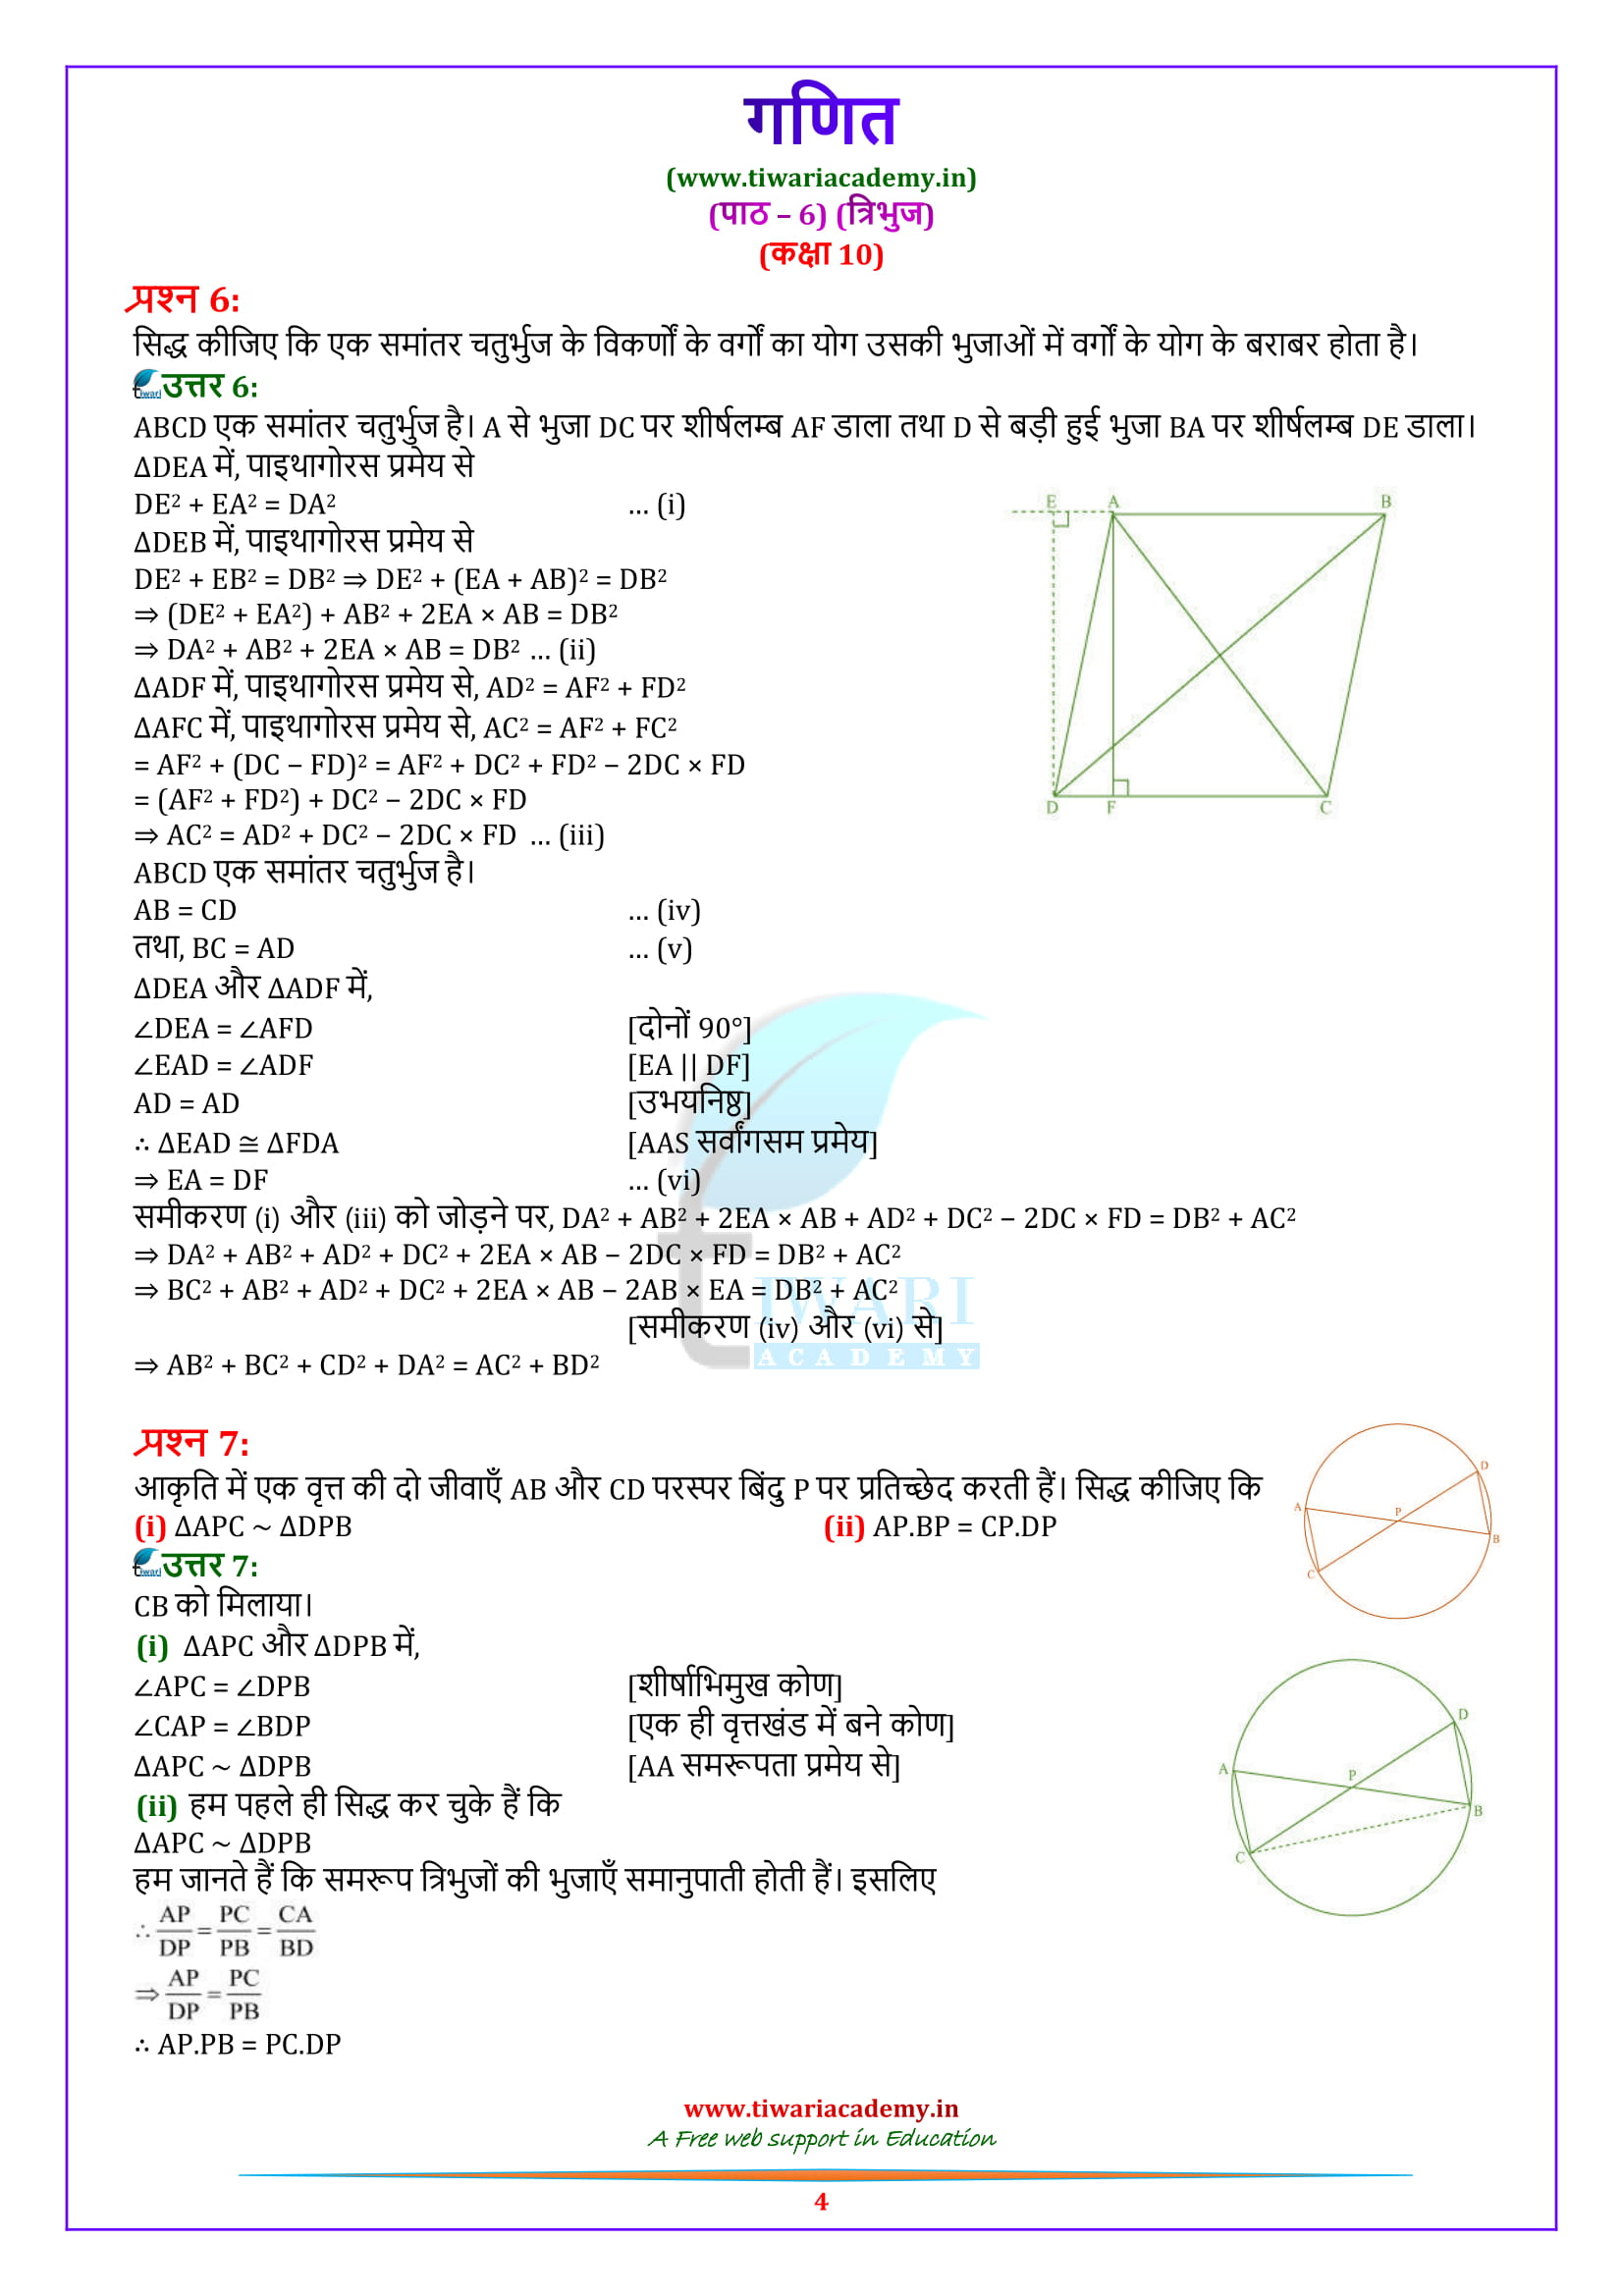 NCERT Solutions for 10 Maths Exercise 6.6 download in pdf